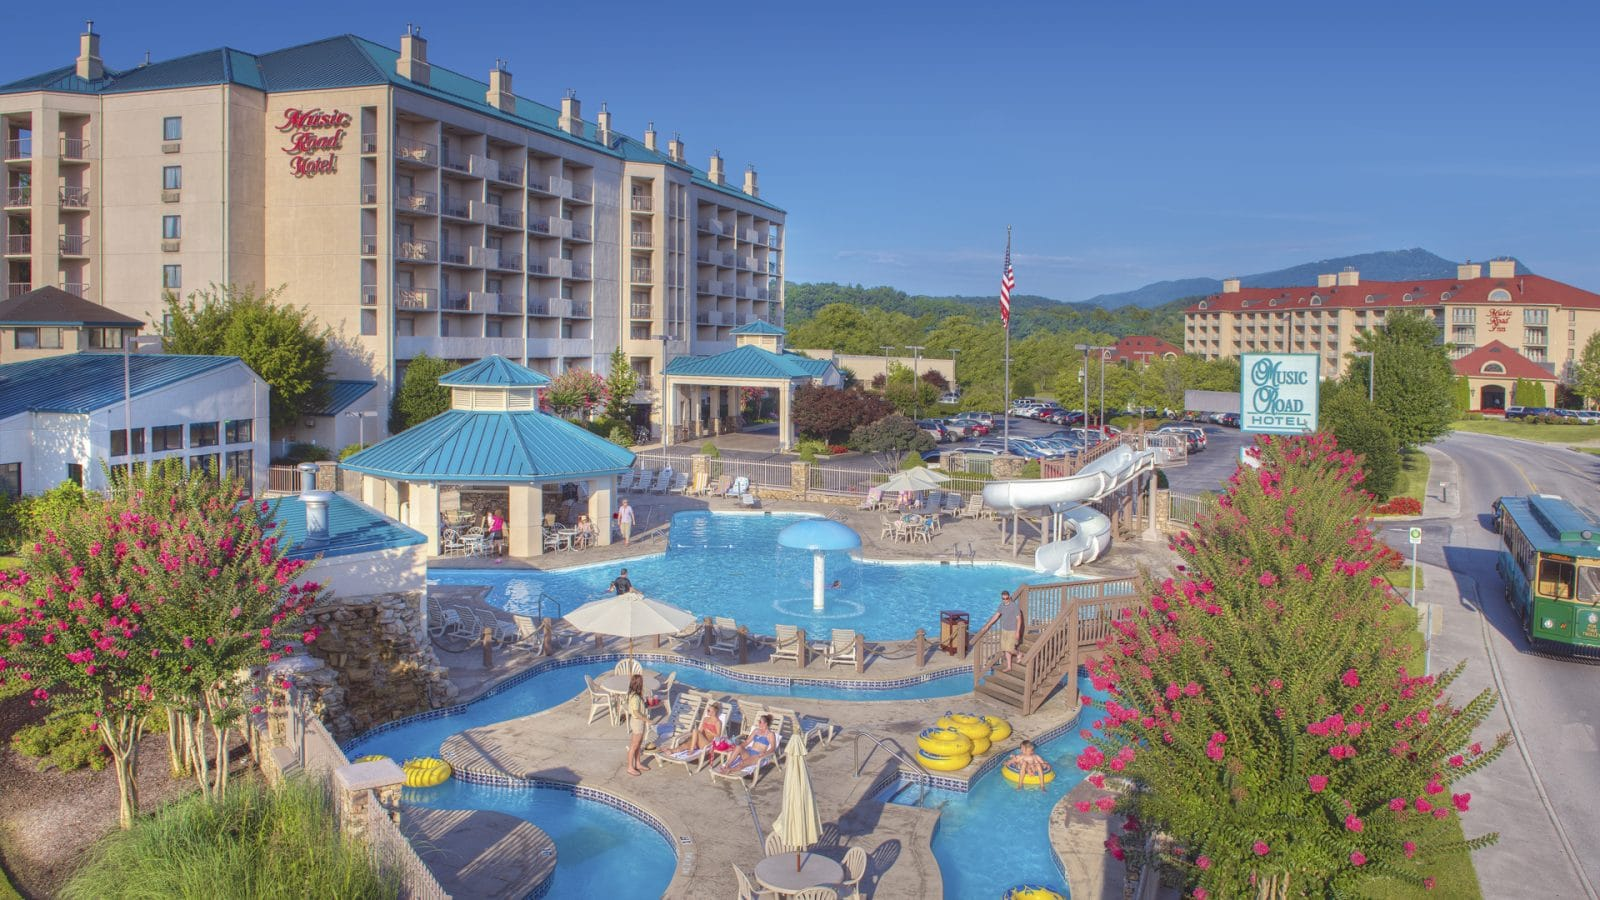 Music Road Resort Pigeon Forge Tennessee